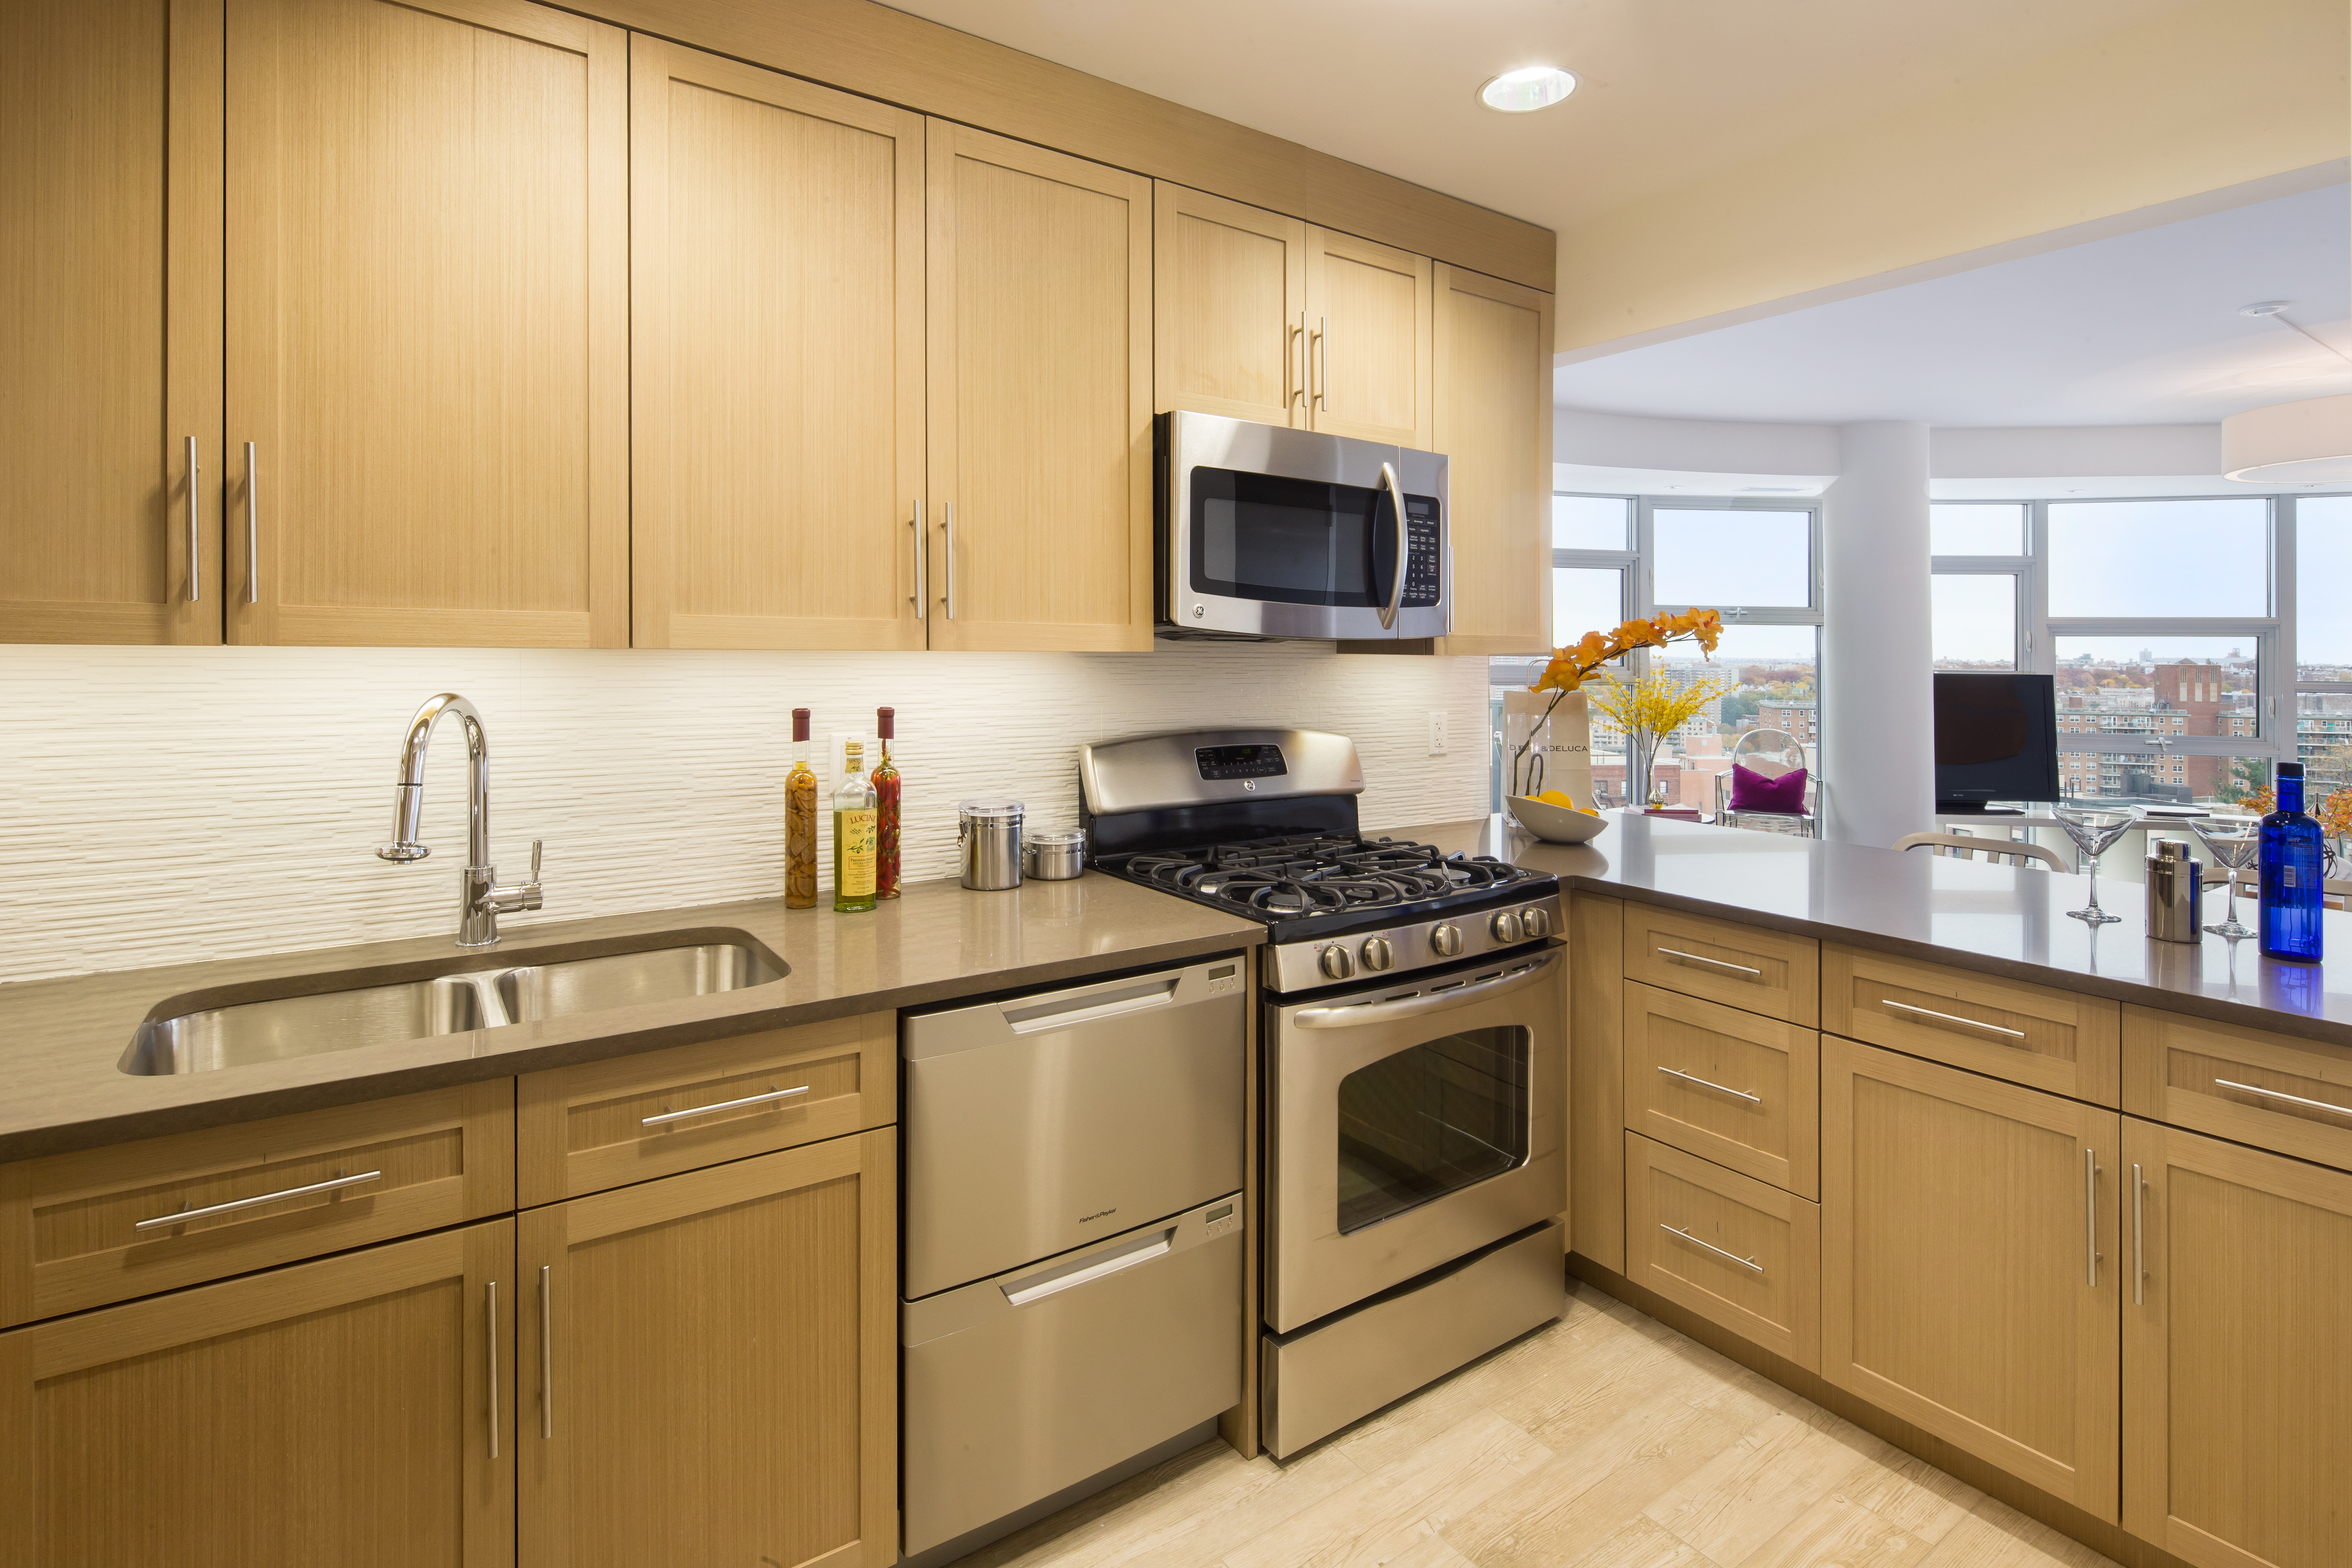 Bronx Kitchen Cabinets Wow Blog